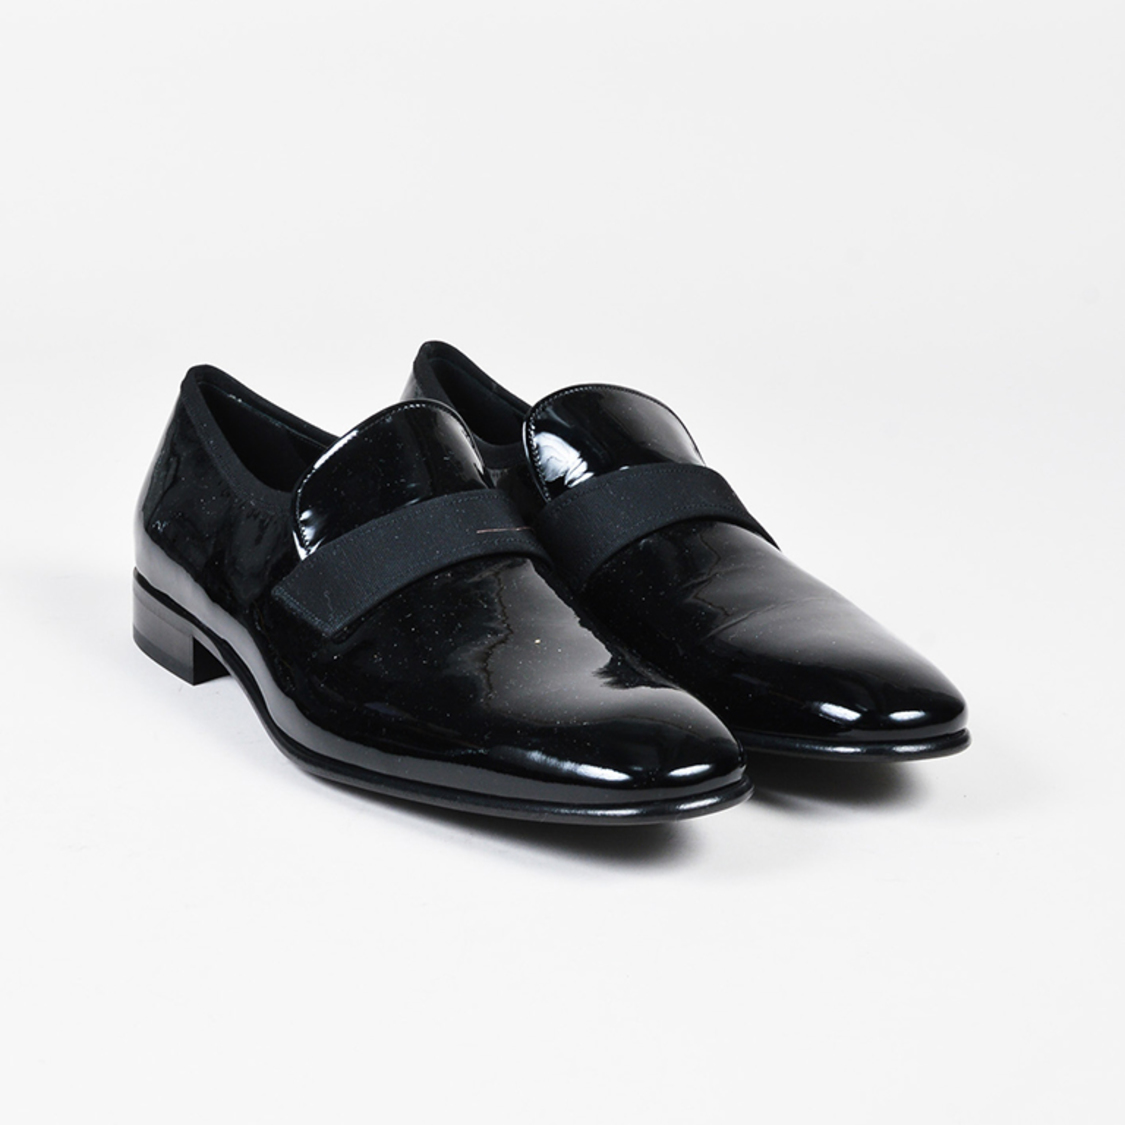 Mens Patent Leather And Grosgrain Dress Shoes